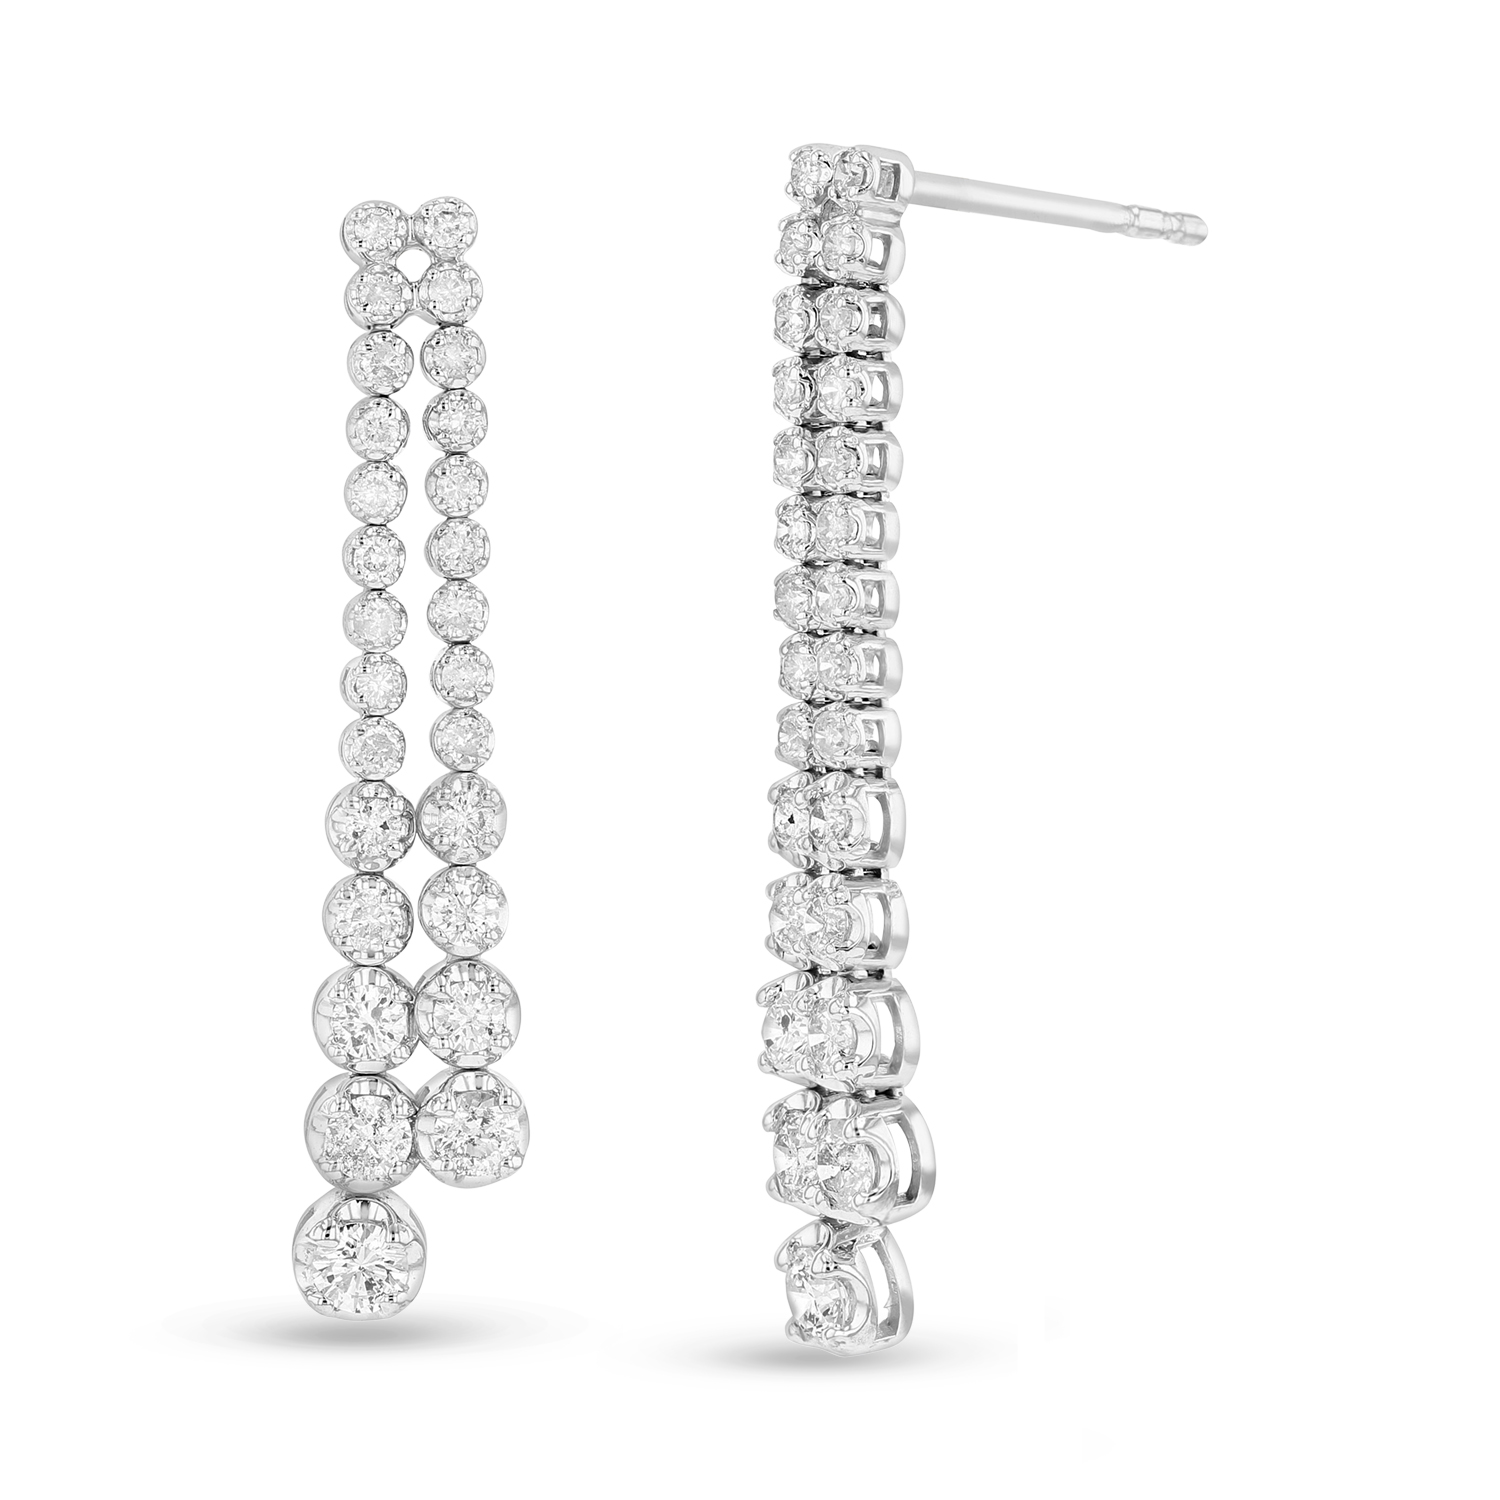 View 1.00 ctw diamond earrings in 14K